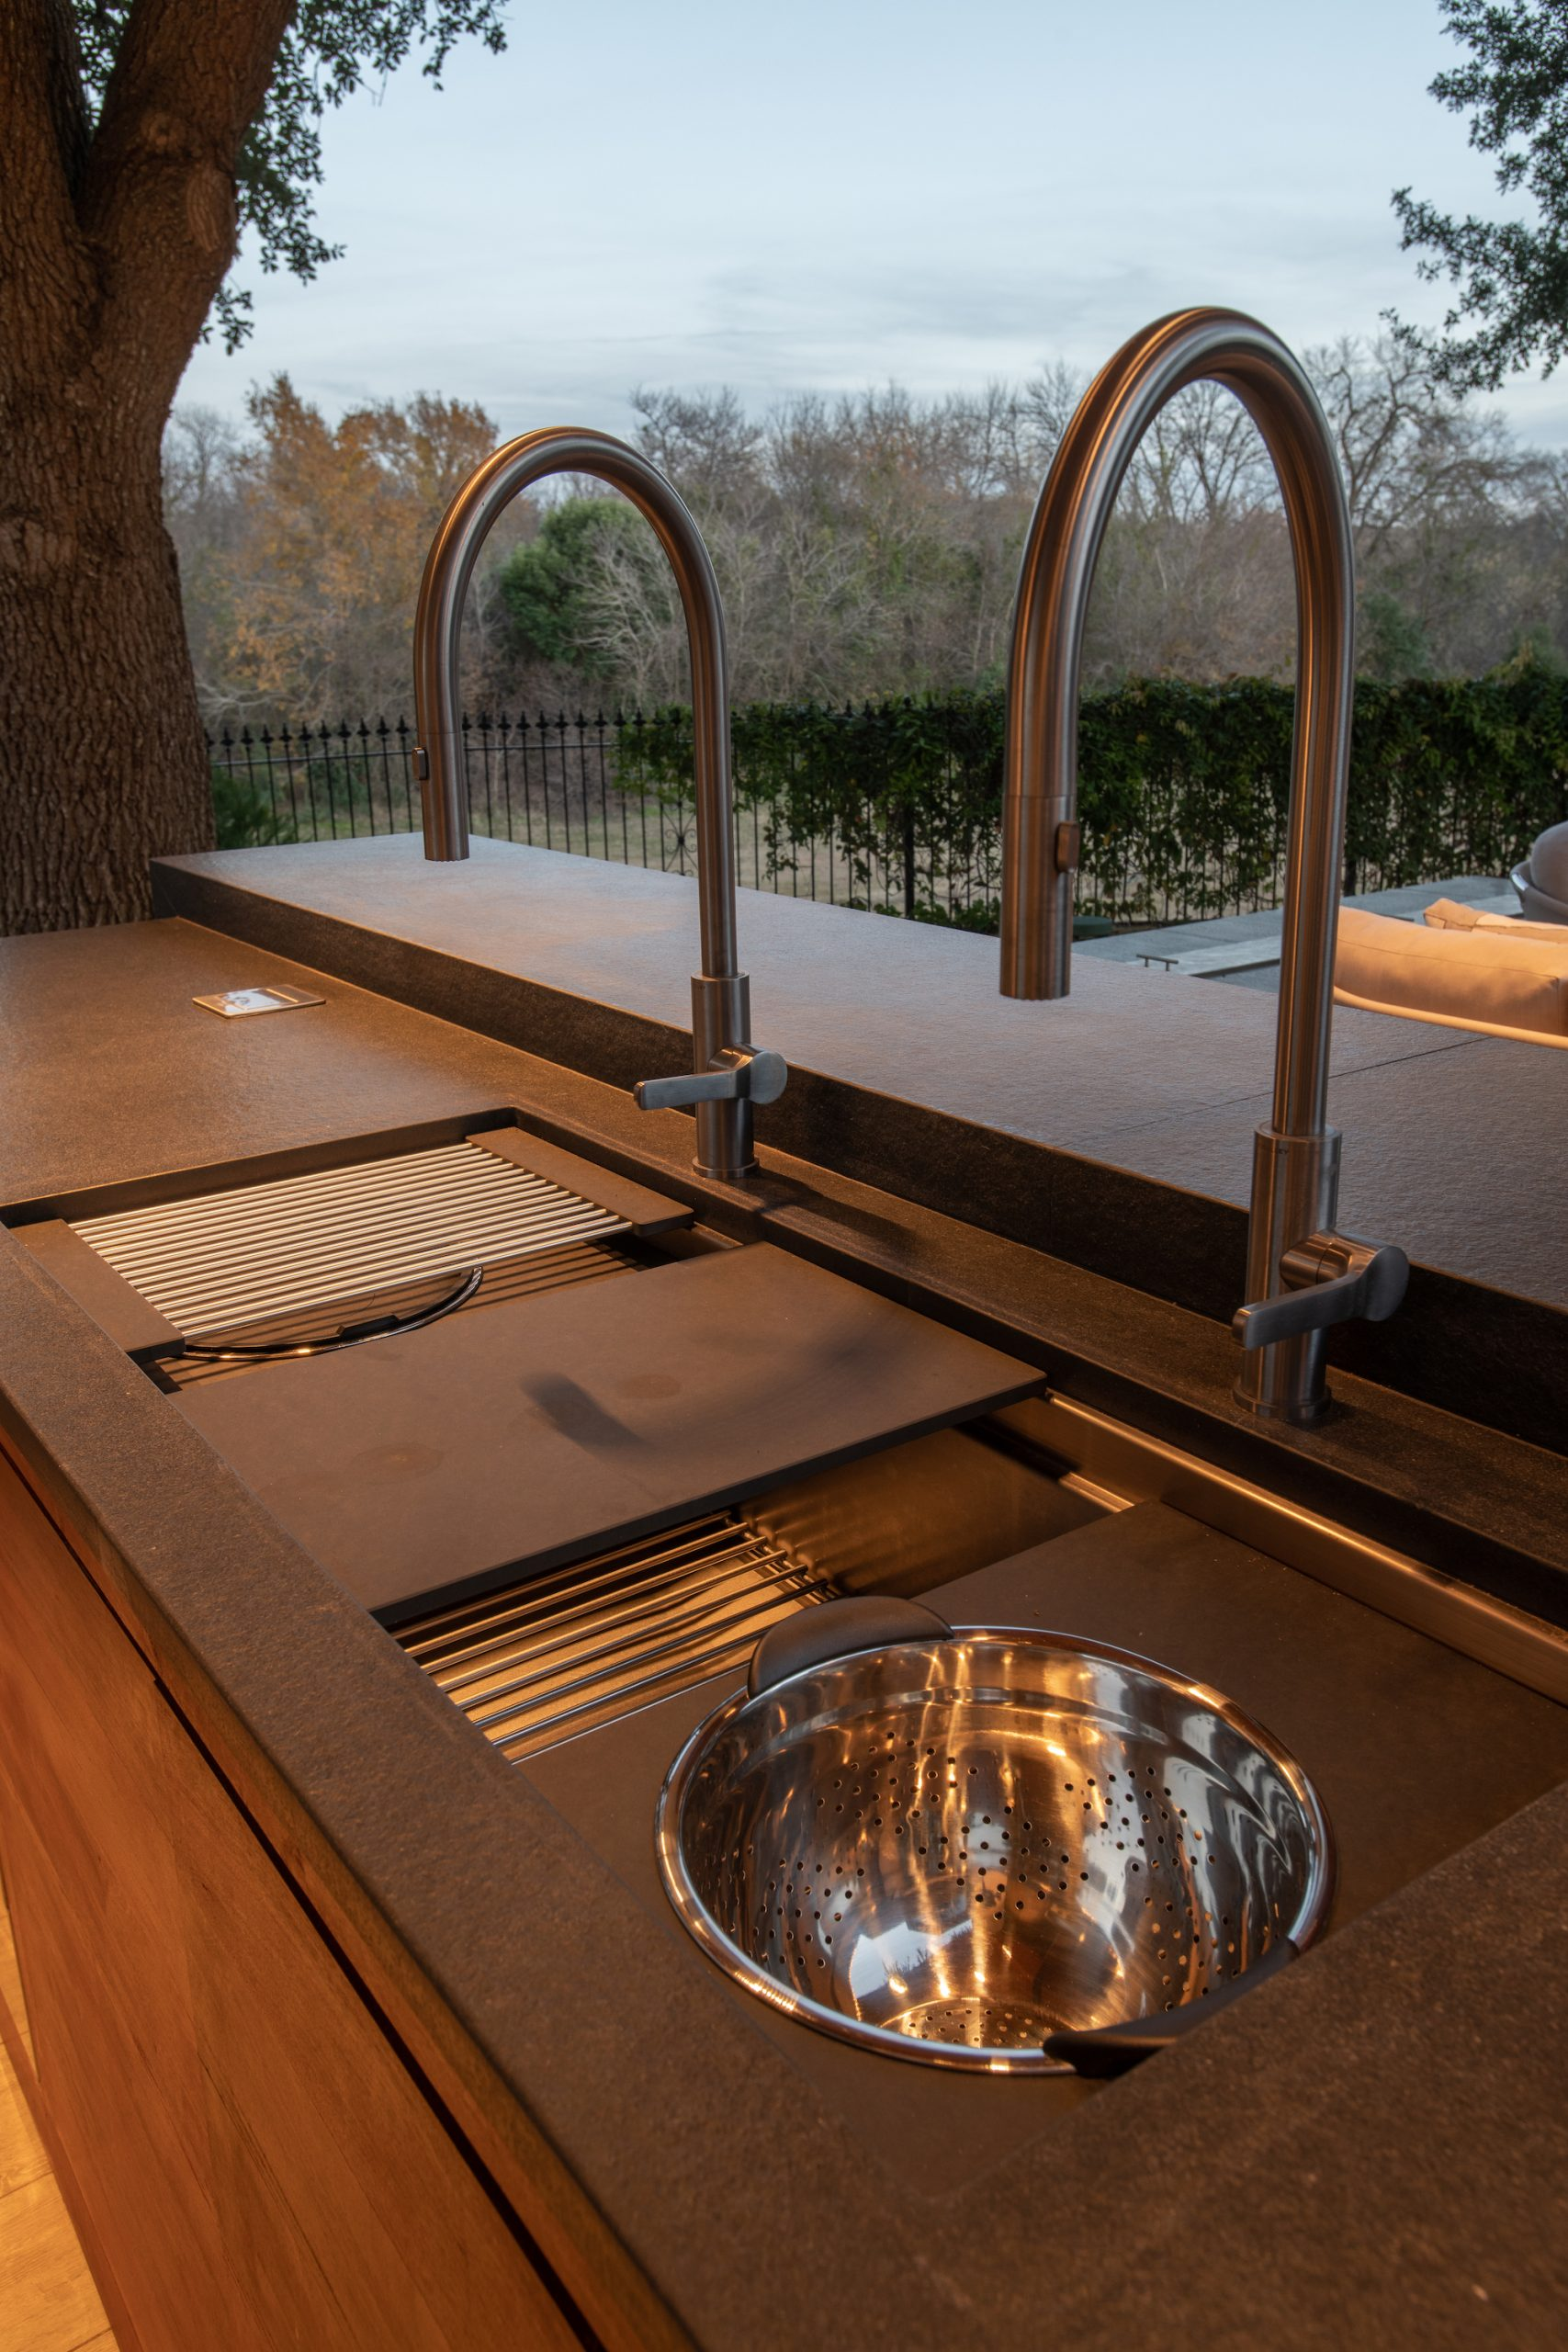 outdoor living galley sink in plano tx